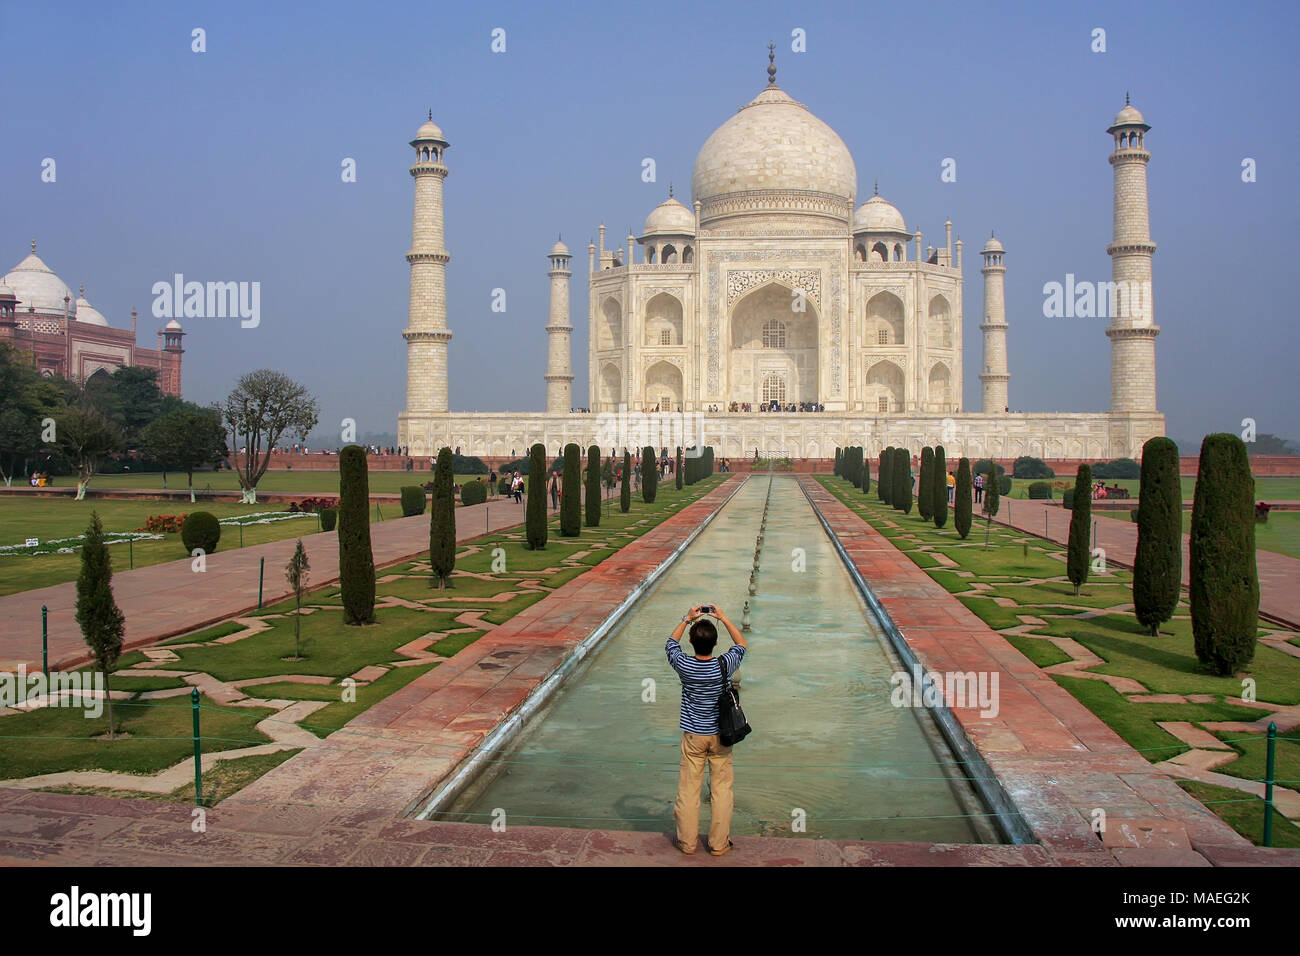 Tourist photographing Taj Mahal in Agra, Uttar Pradesh, India. It was build in 1632 by Emperor Shah Jahan as a memorial for his second wife Mumtaz Mah - Stock Image